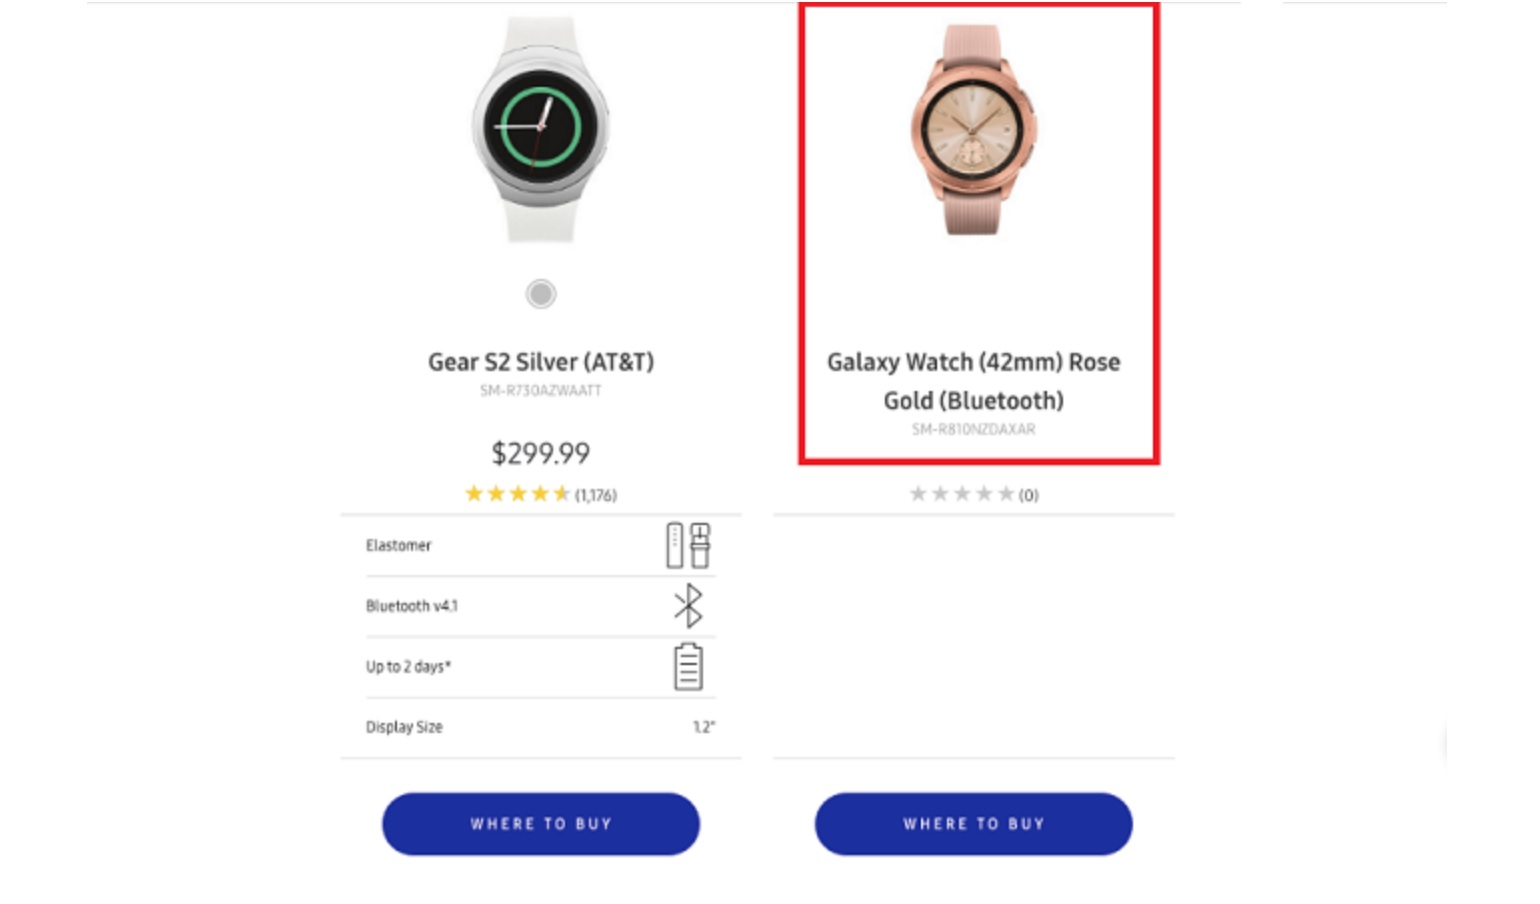 Samsung lekt per ongeluk foto van Galaxy Watch op eigen website